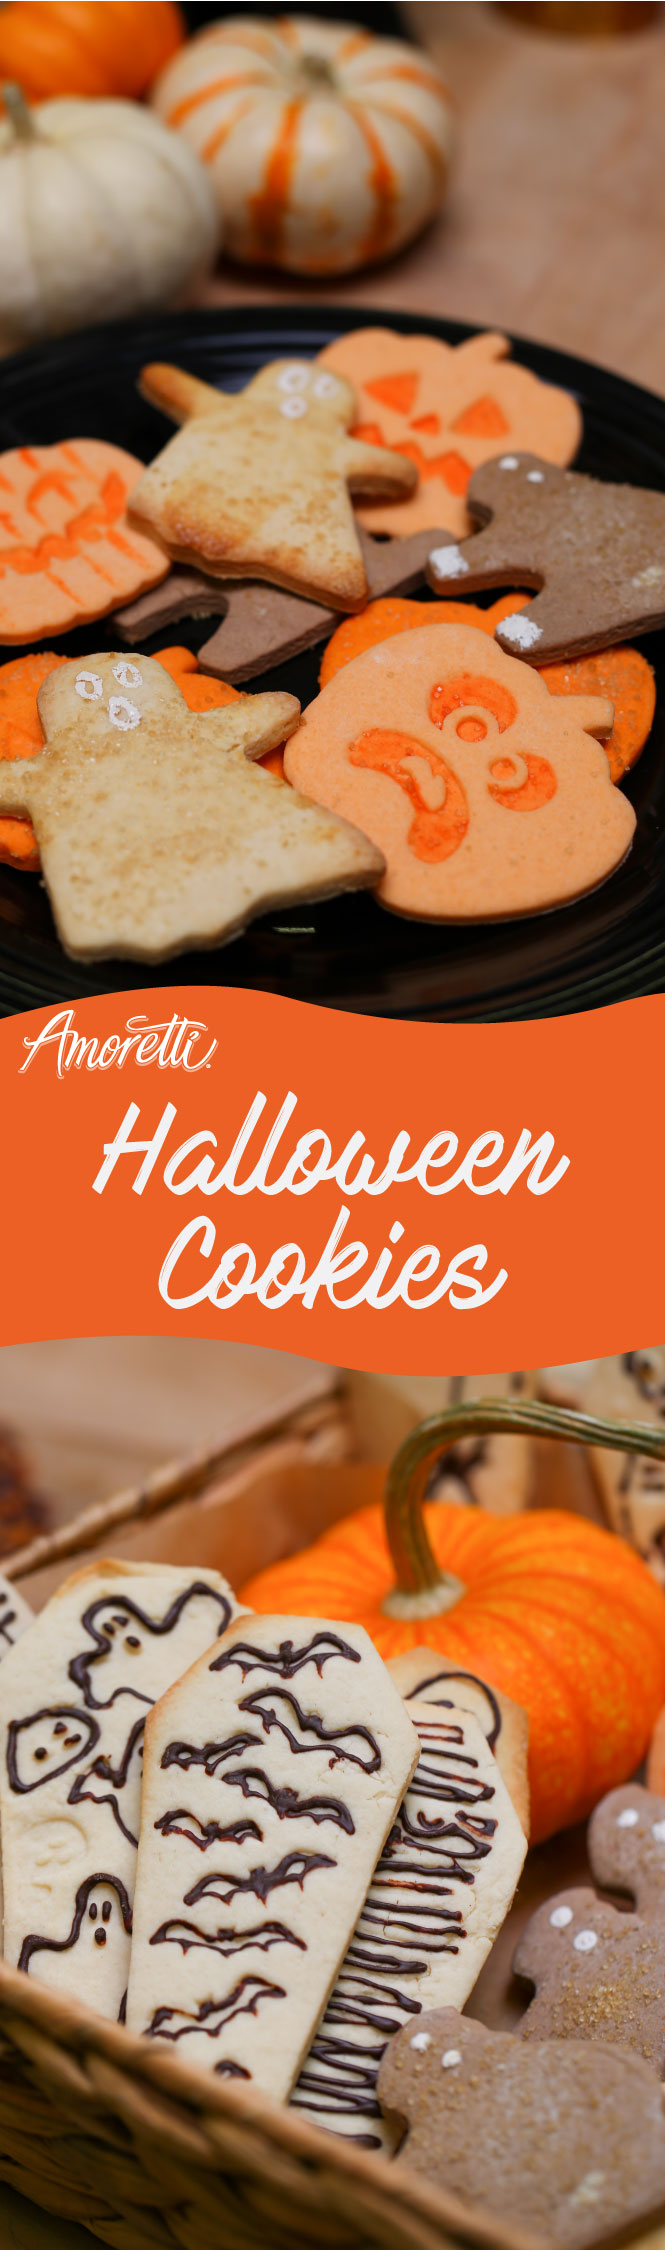 Make Halloween extra festive with these gorgeous treats!